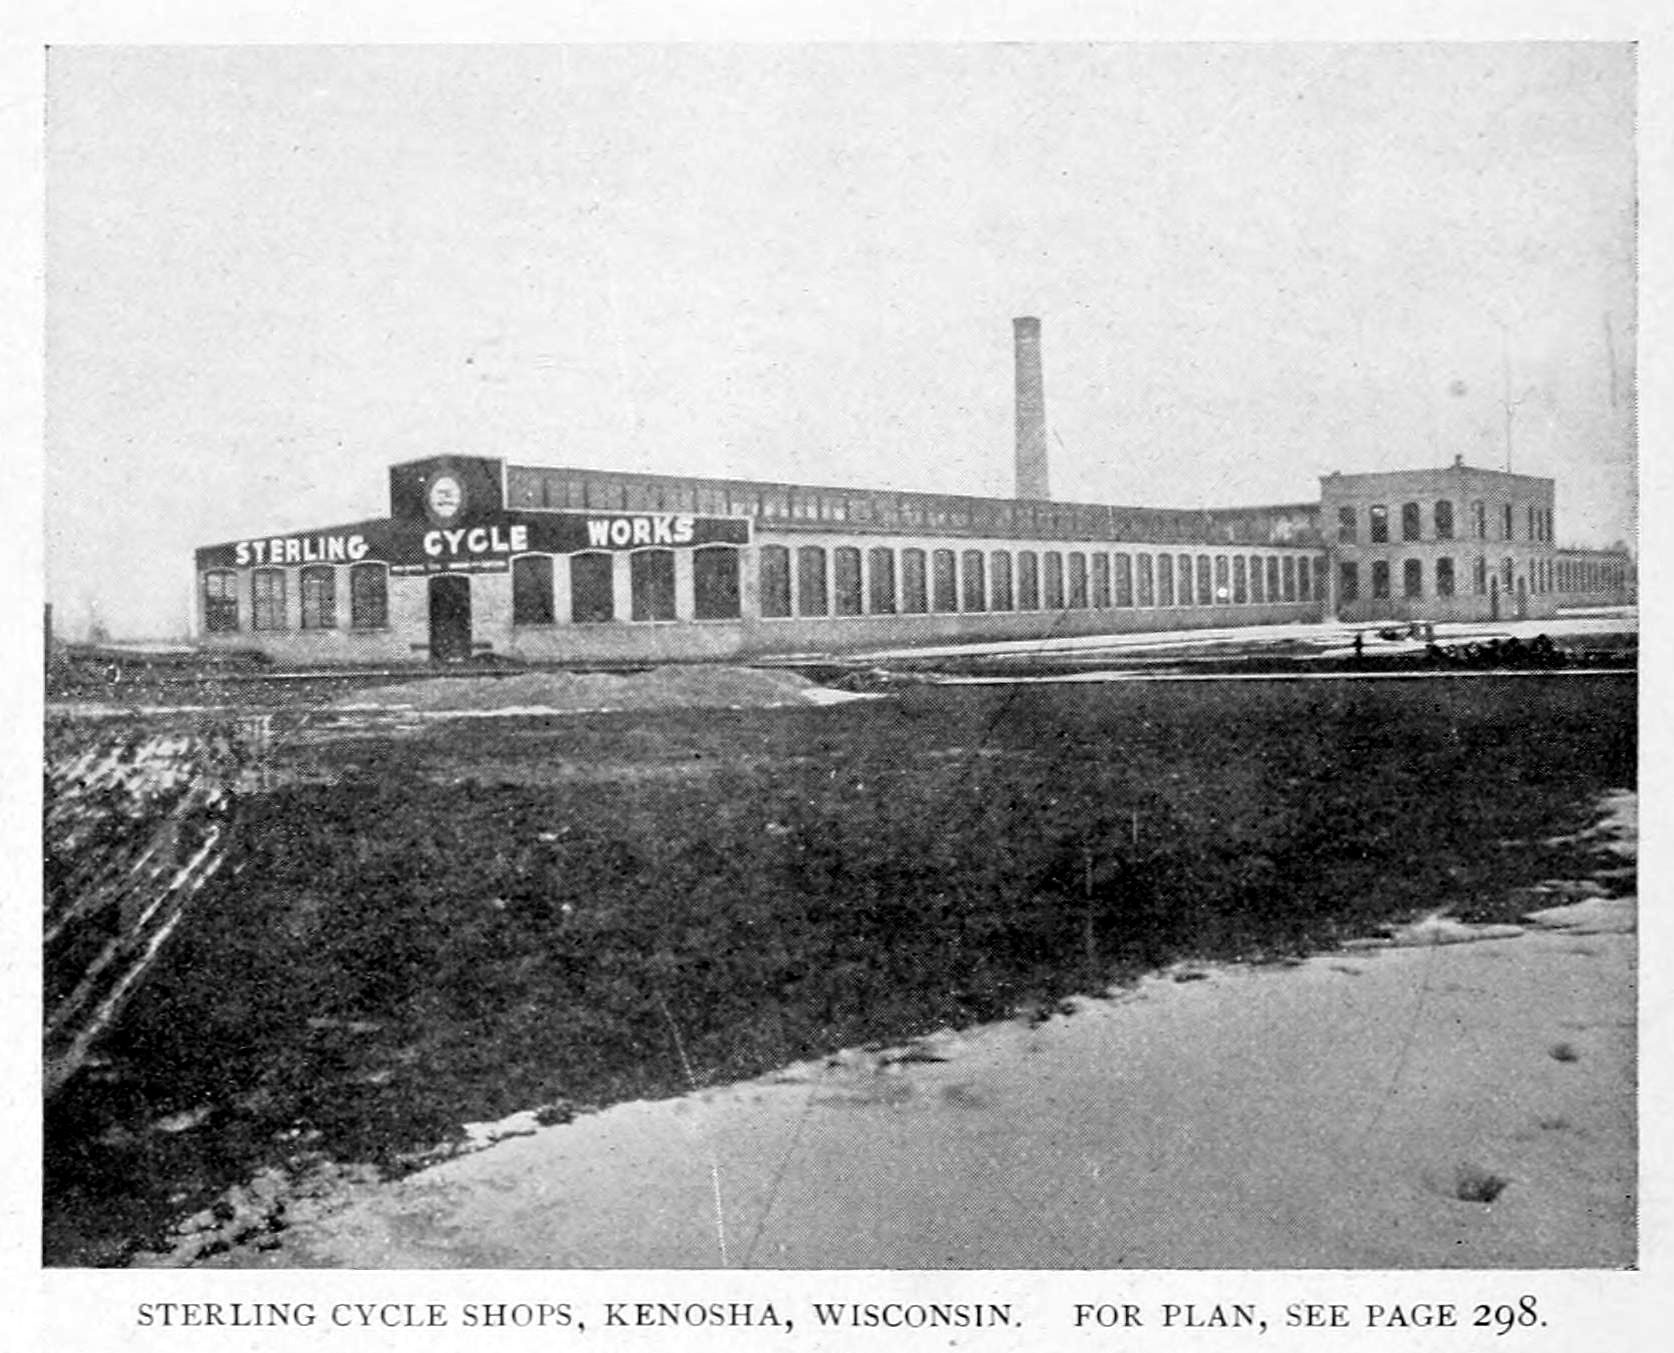 Sterling Cycle Shops, Kenosha, Wisconsin, 1896.